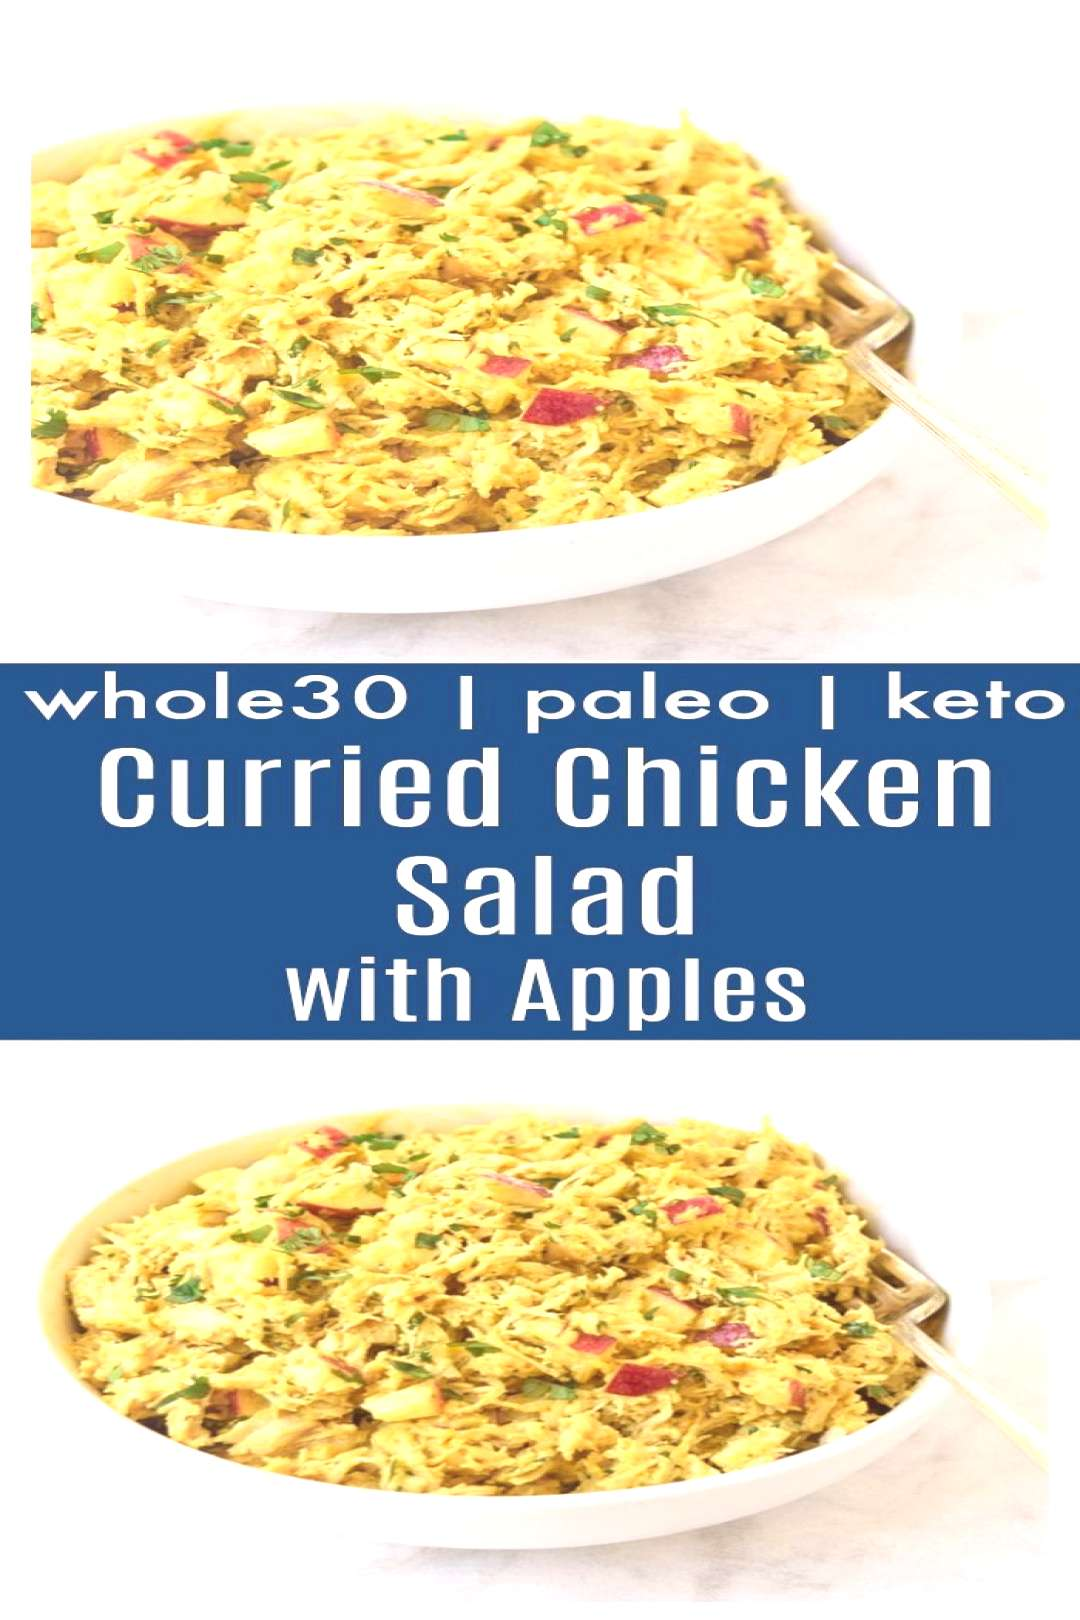 Curried Chicken Salad with Apples (Whole30 Paleo) - Chicken, apple, almonds, and...,Curried C... Cu